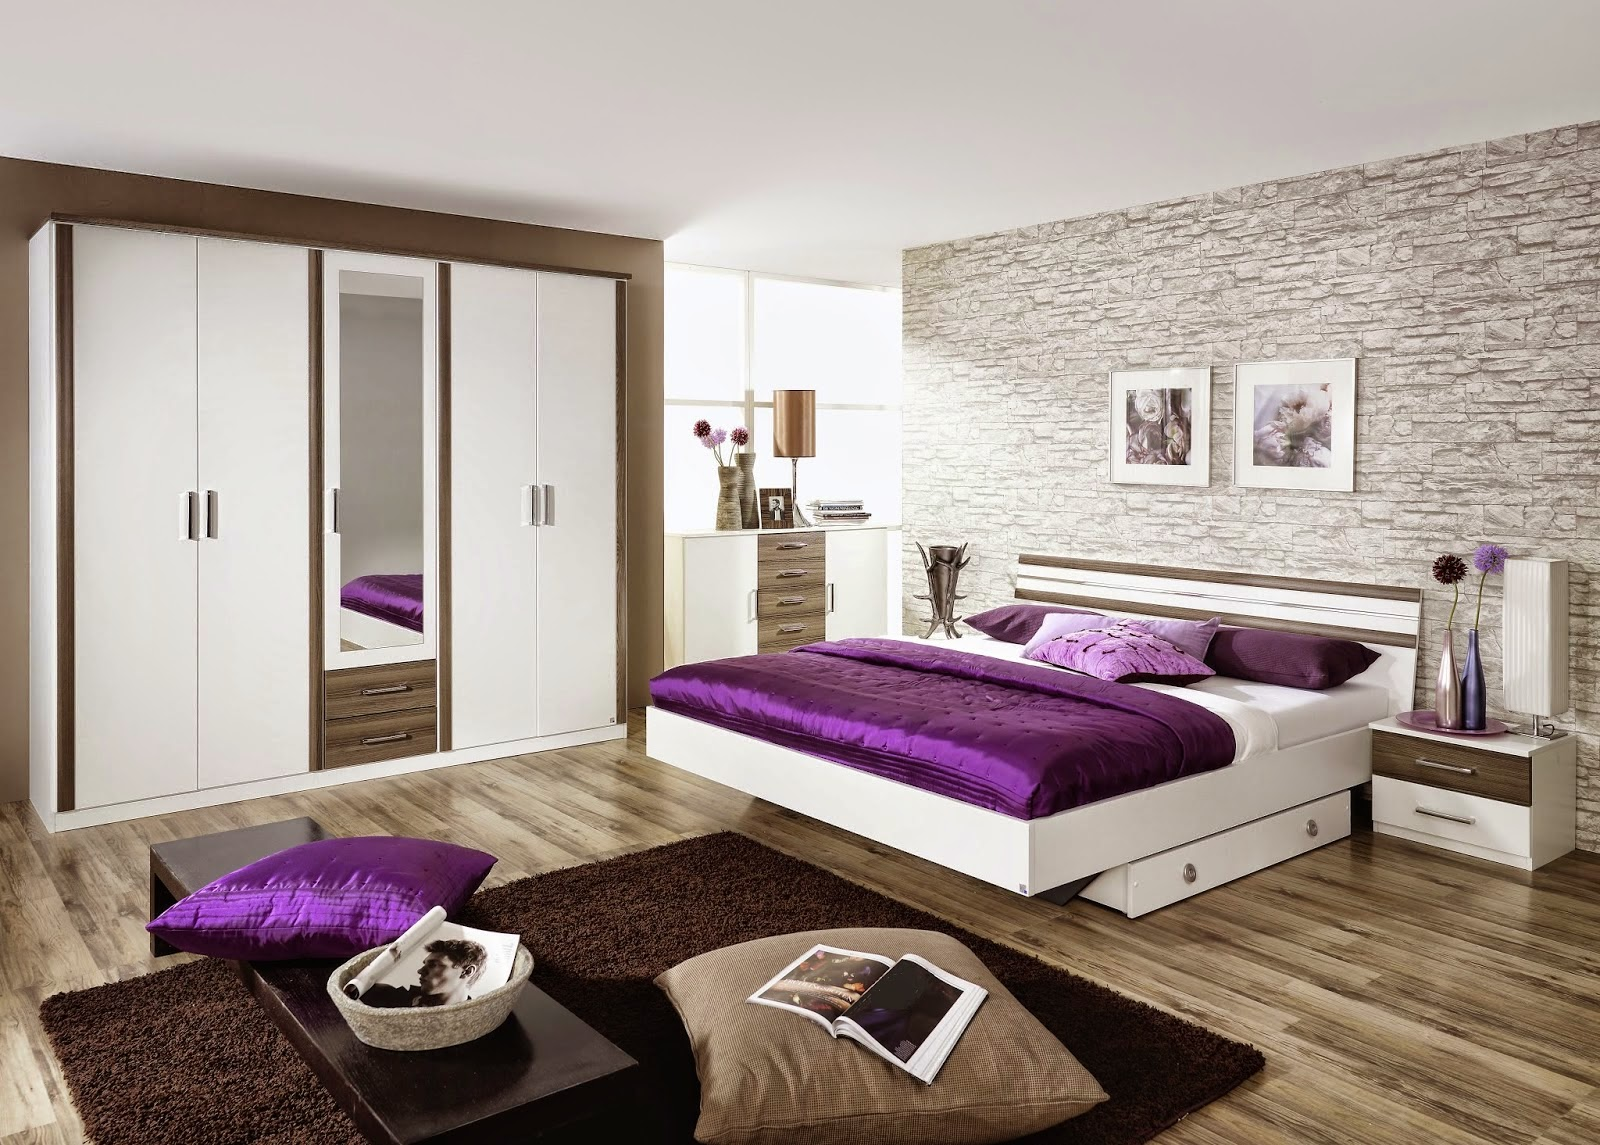 D co chambre mansardee adulte for Idee de decoration de chambre a coucher